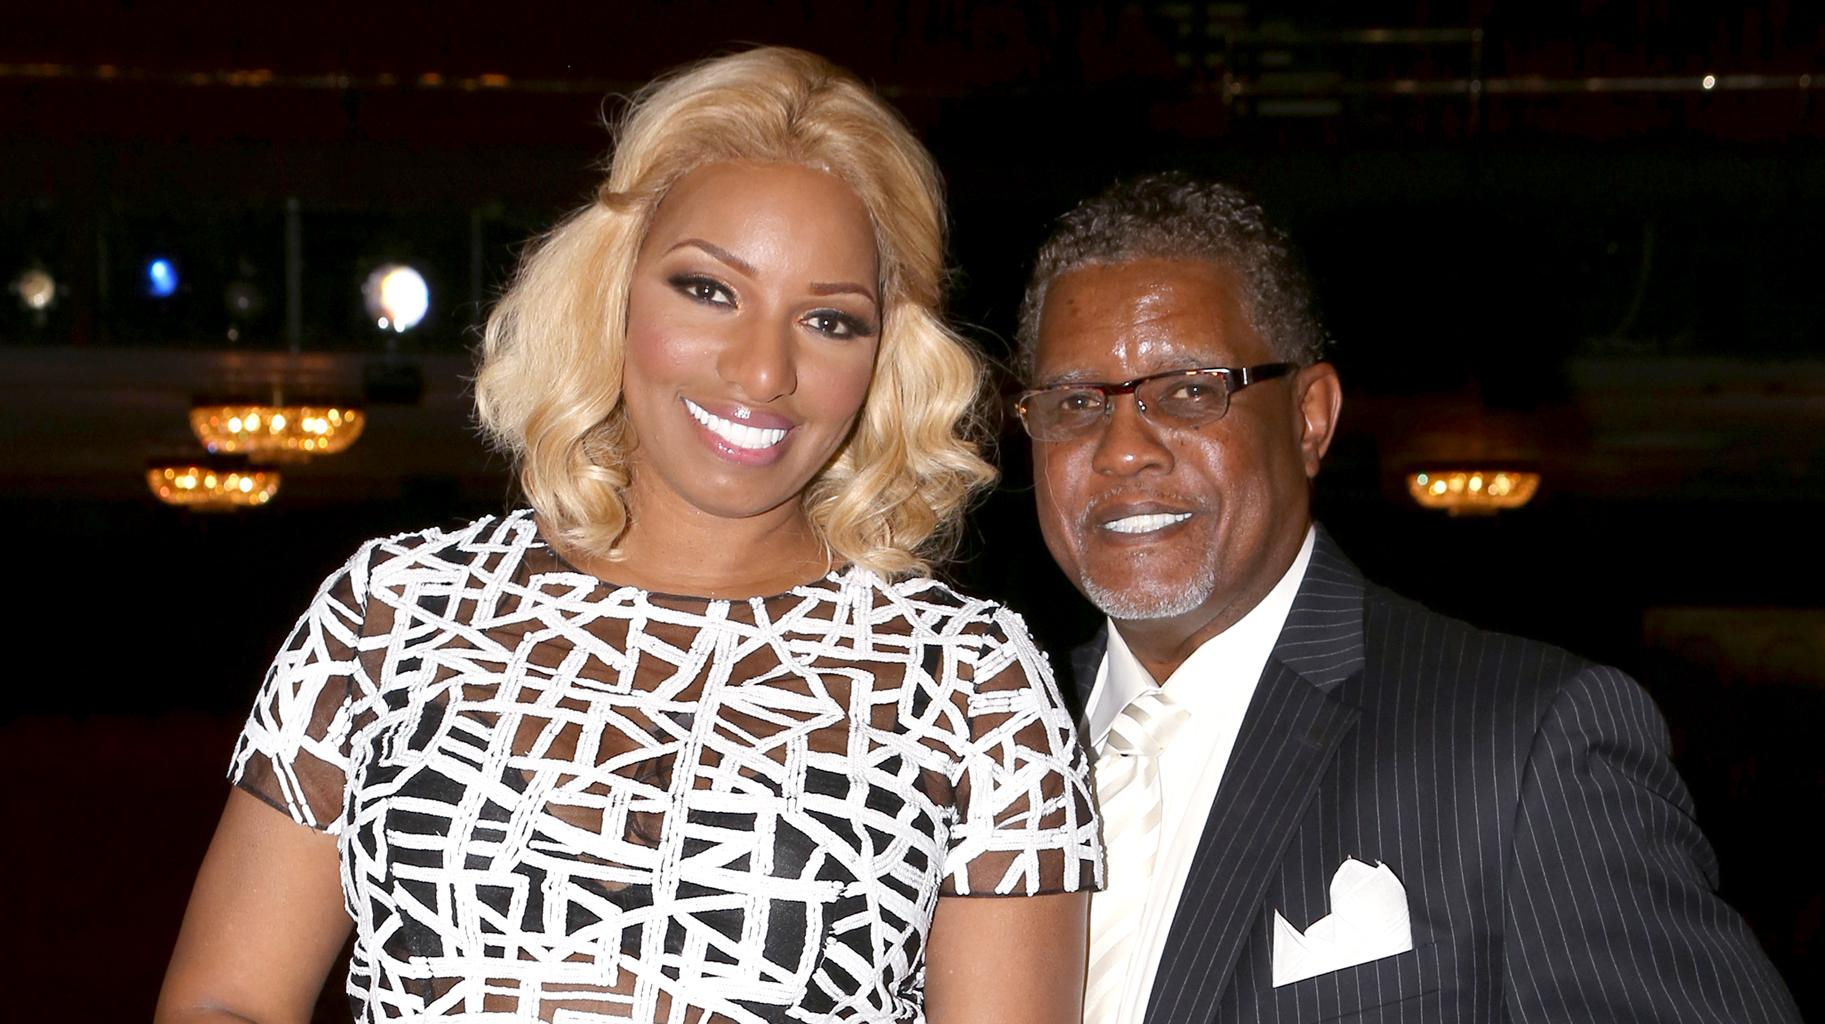 RHOA: Nene Leakes Says She Would Not Tell If She And Gregg Were Seeing Other People Amid Rumors Of Open Marriage